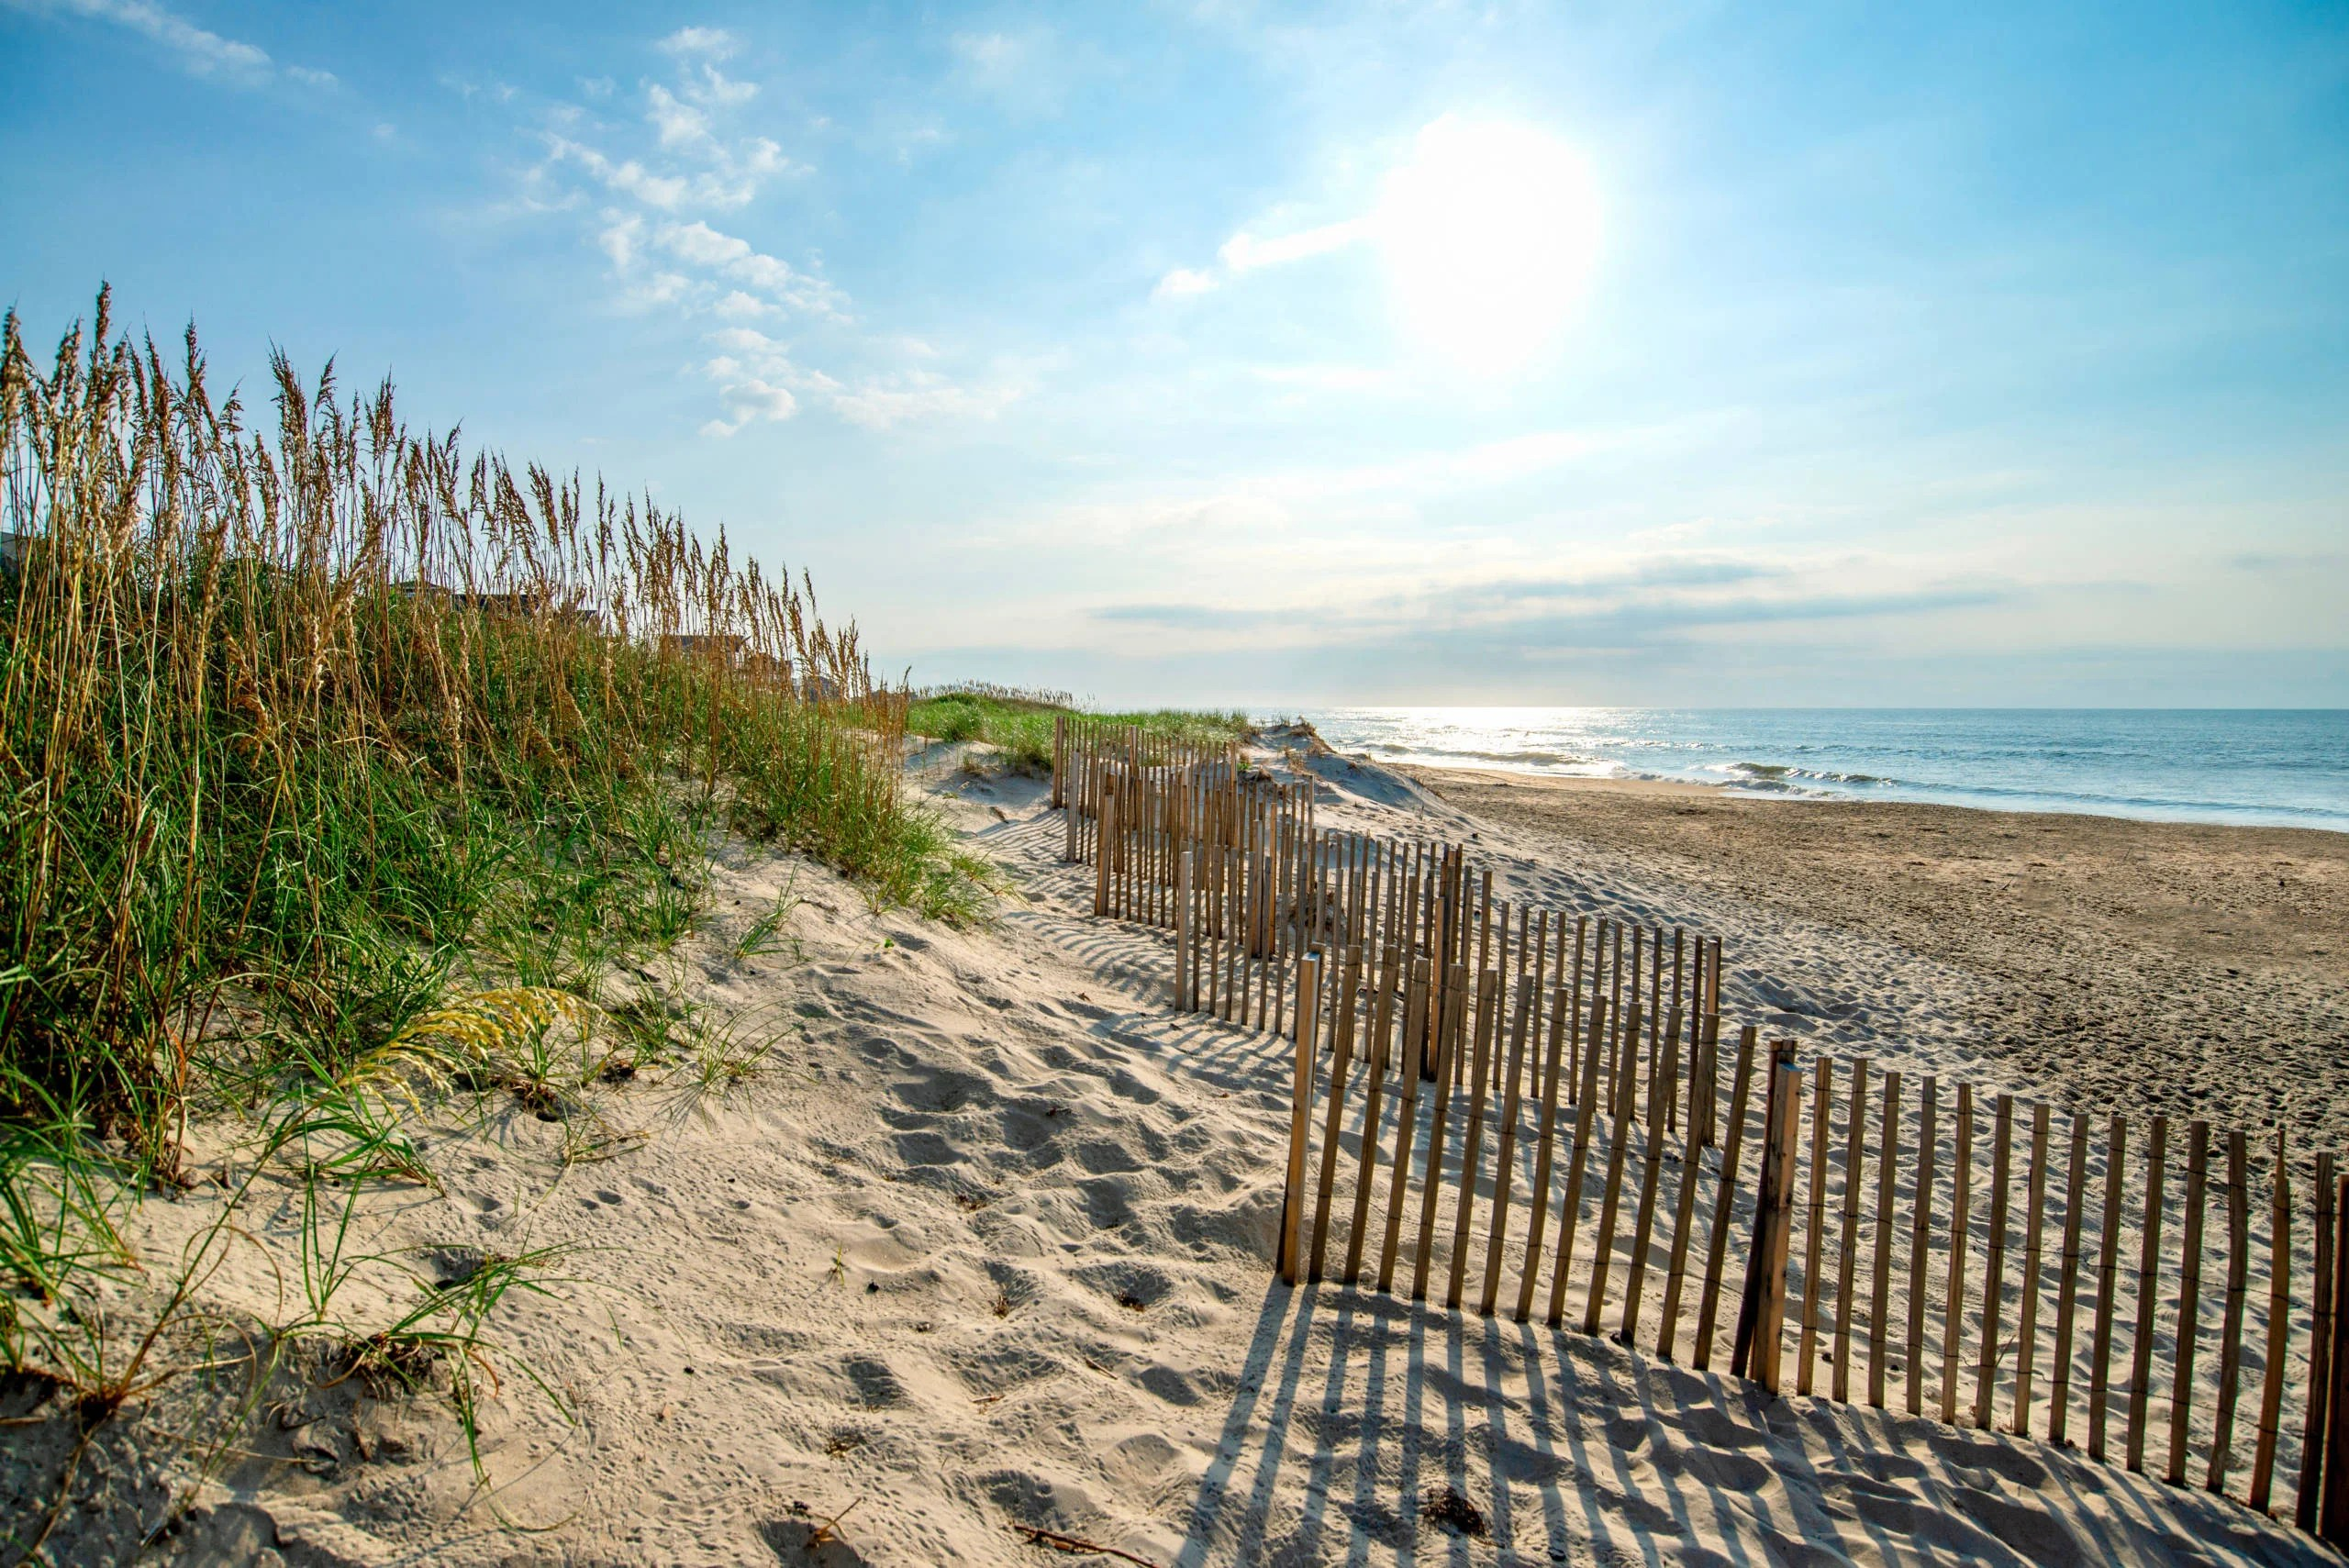 How To Plan A Trip To Outer Banks North Carolina